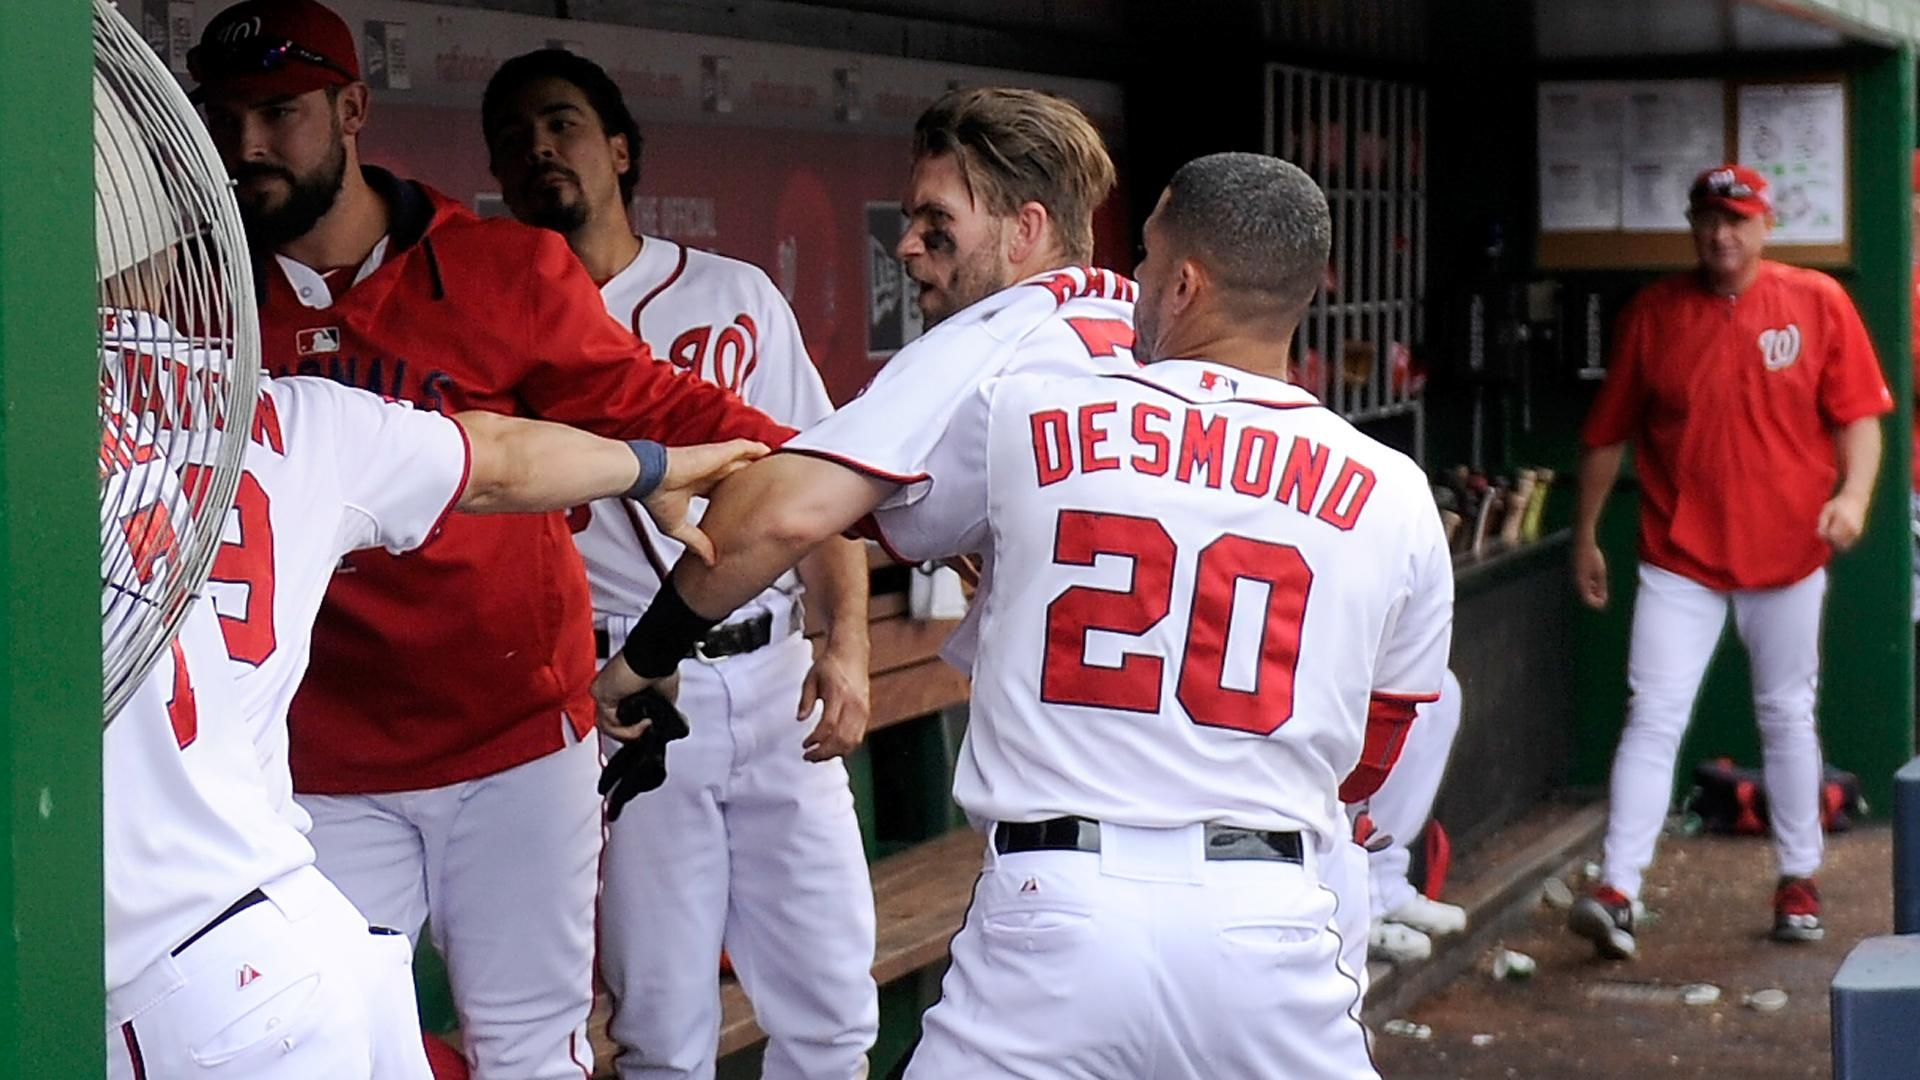 Papelbon was out of place with Harper